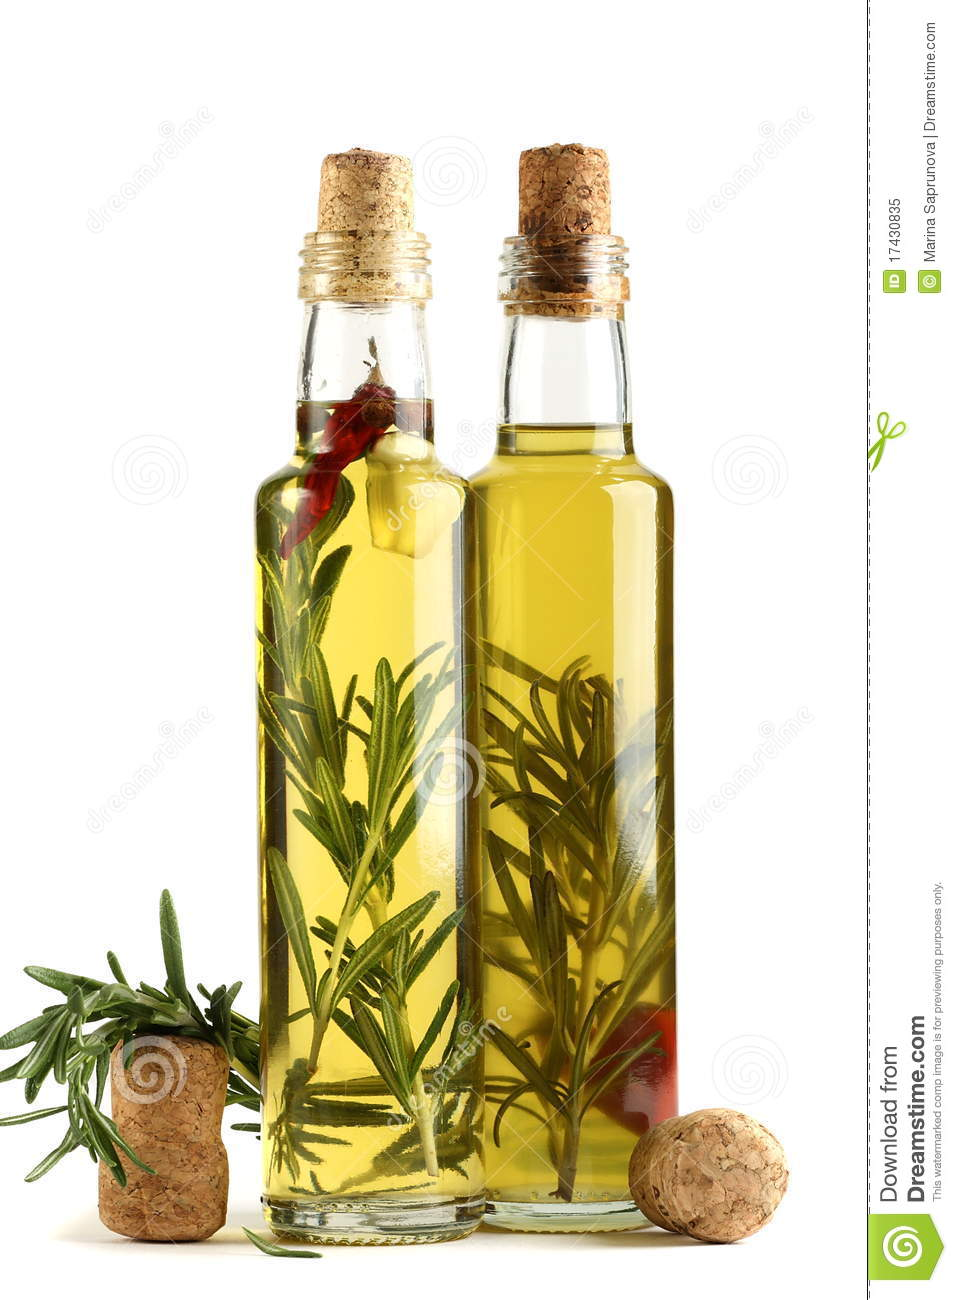 Olive Oil With Rosemary, Garlic And Pepper. Royalty Free Stock Photo ...